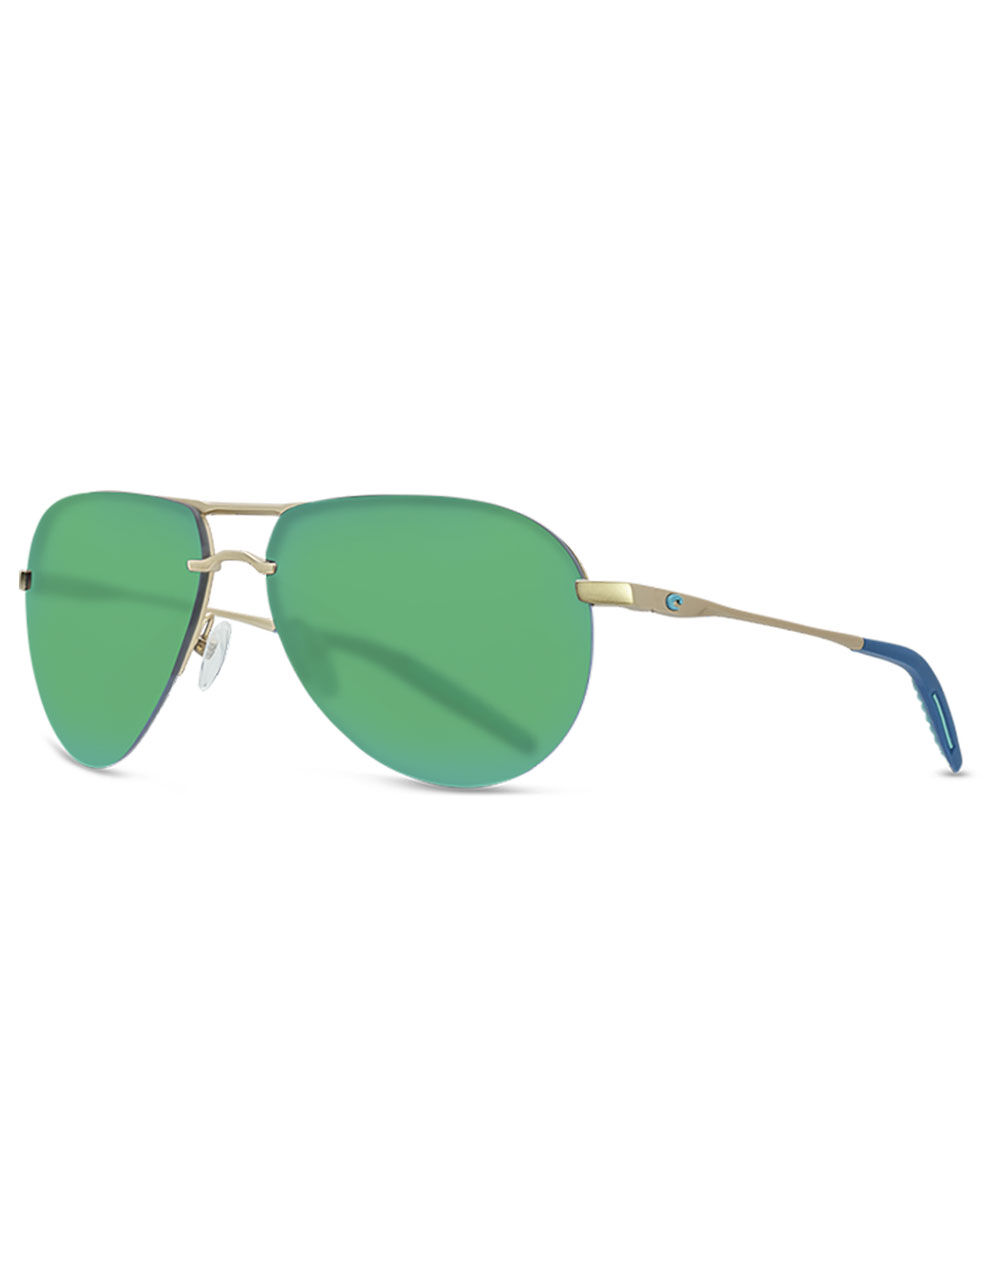 Image of COSTA HELO MATTE CHAMPAGNE & DEEP BLUE TURQUOISE SUNGLASSES